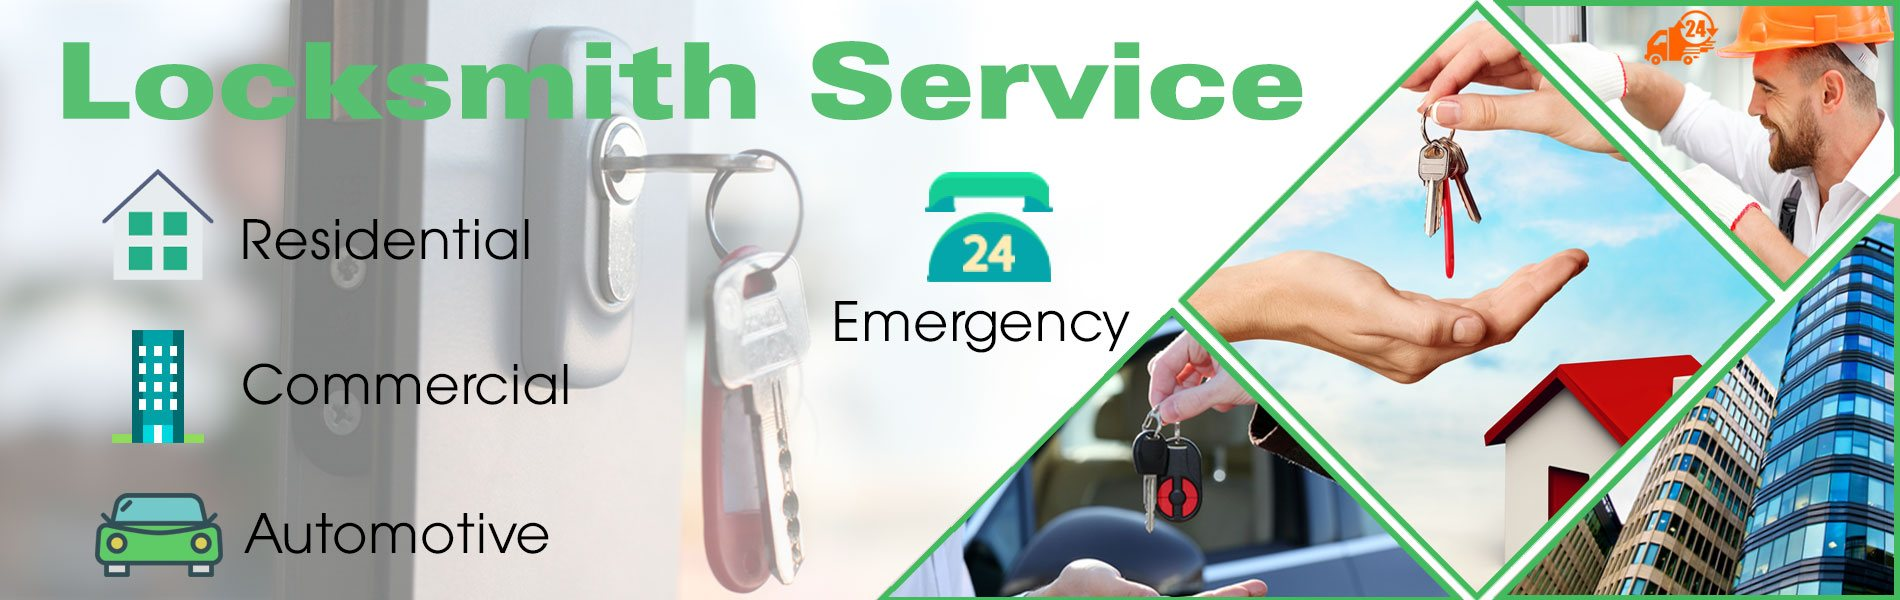 Lock Safe Services Highlands, NJ 732-412-5606